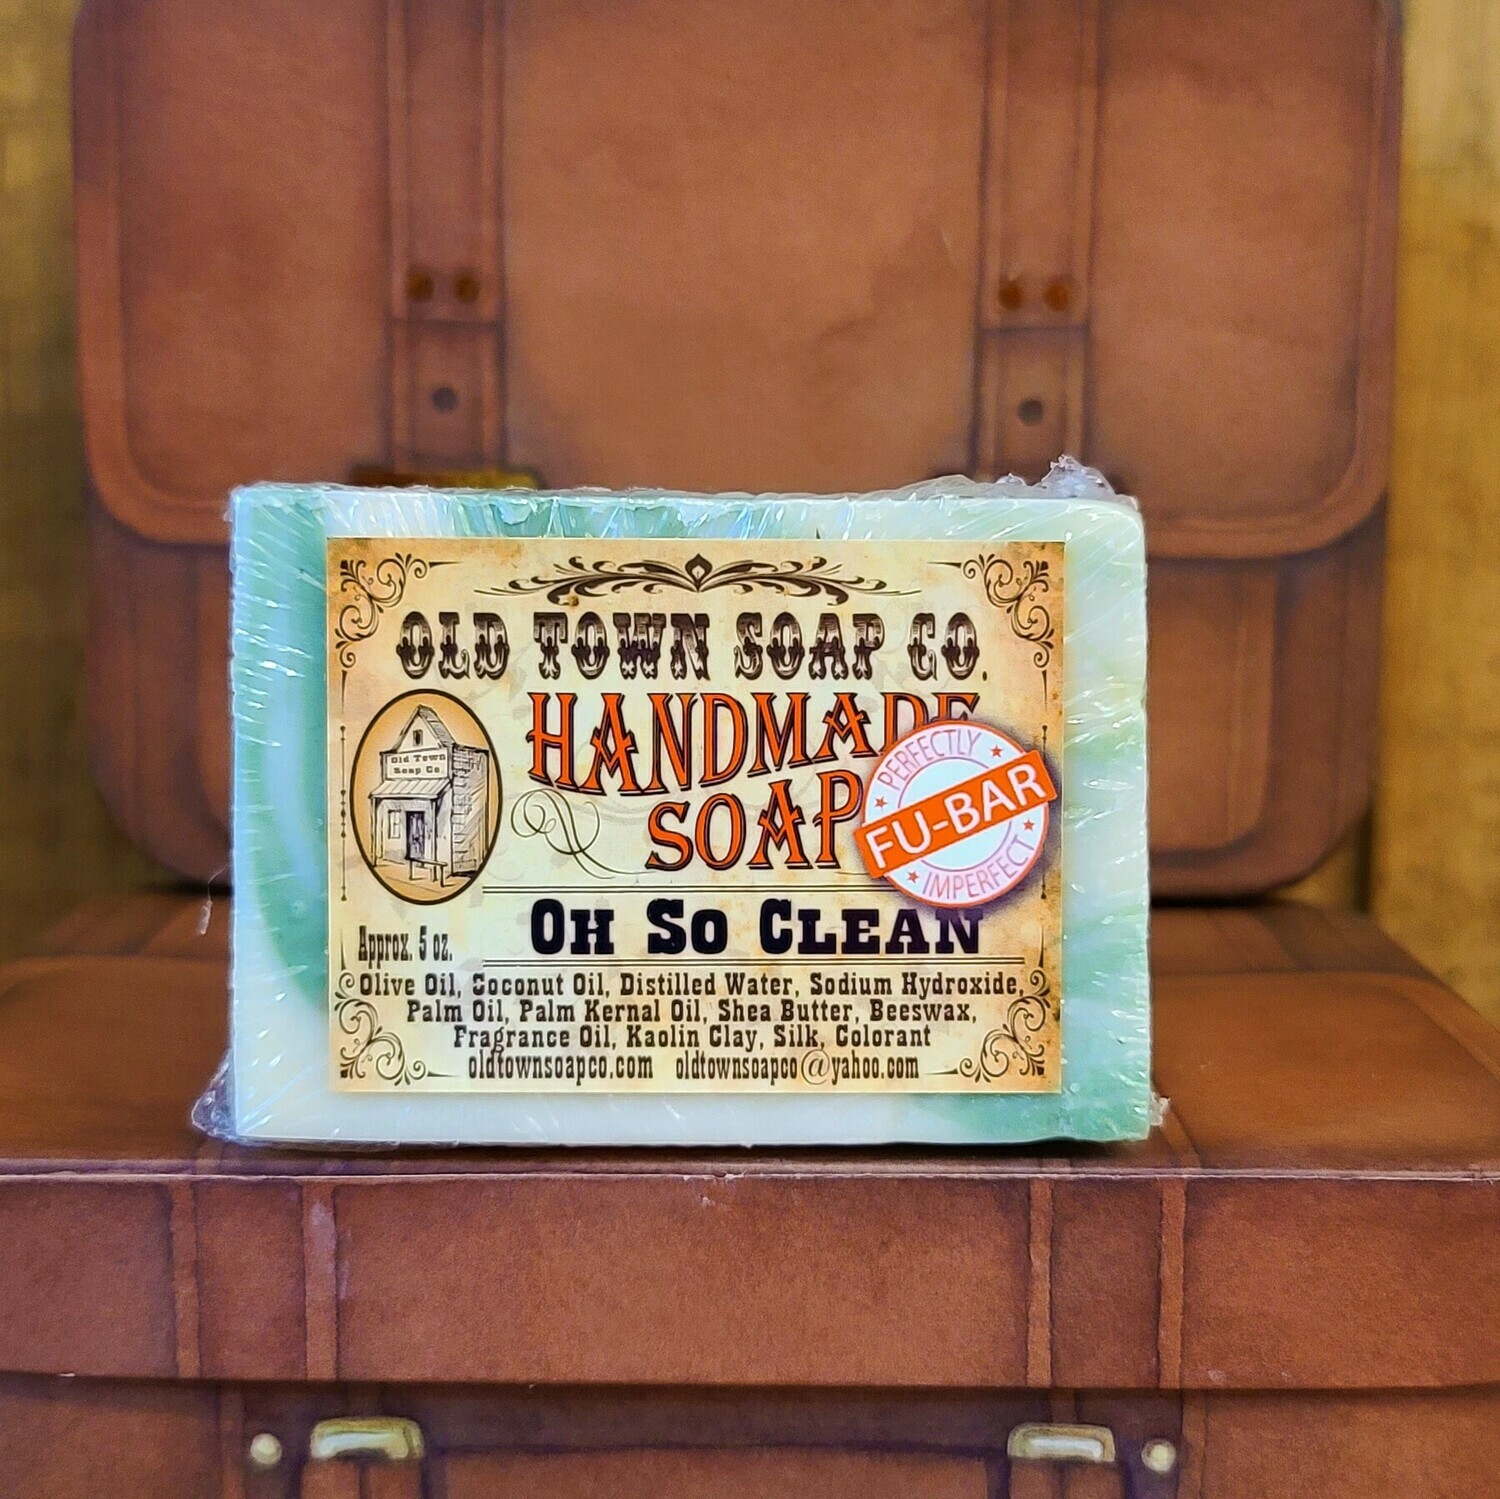 Oh So Clean -FU Bar Soap